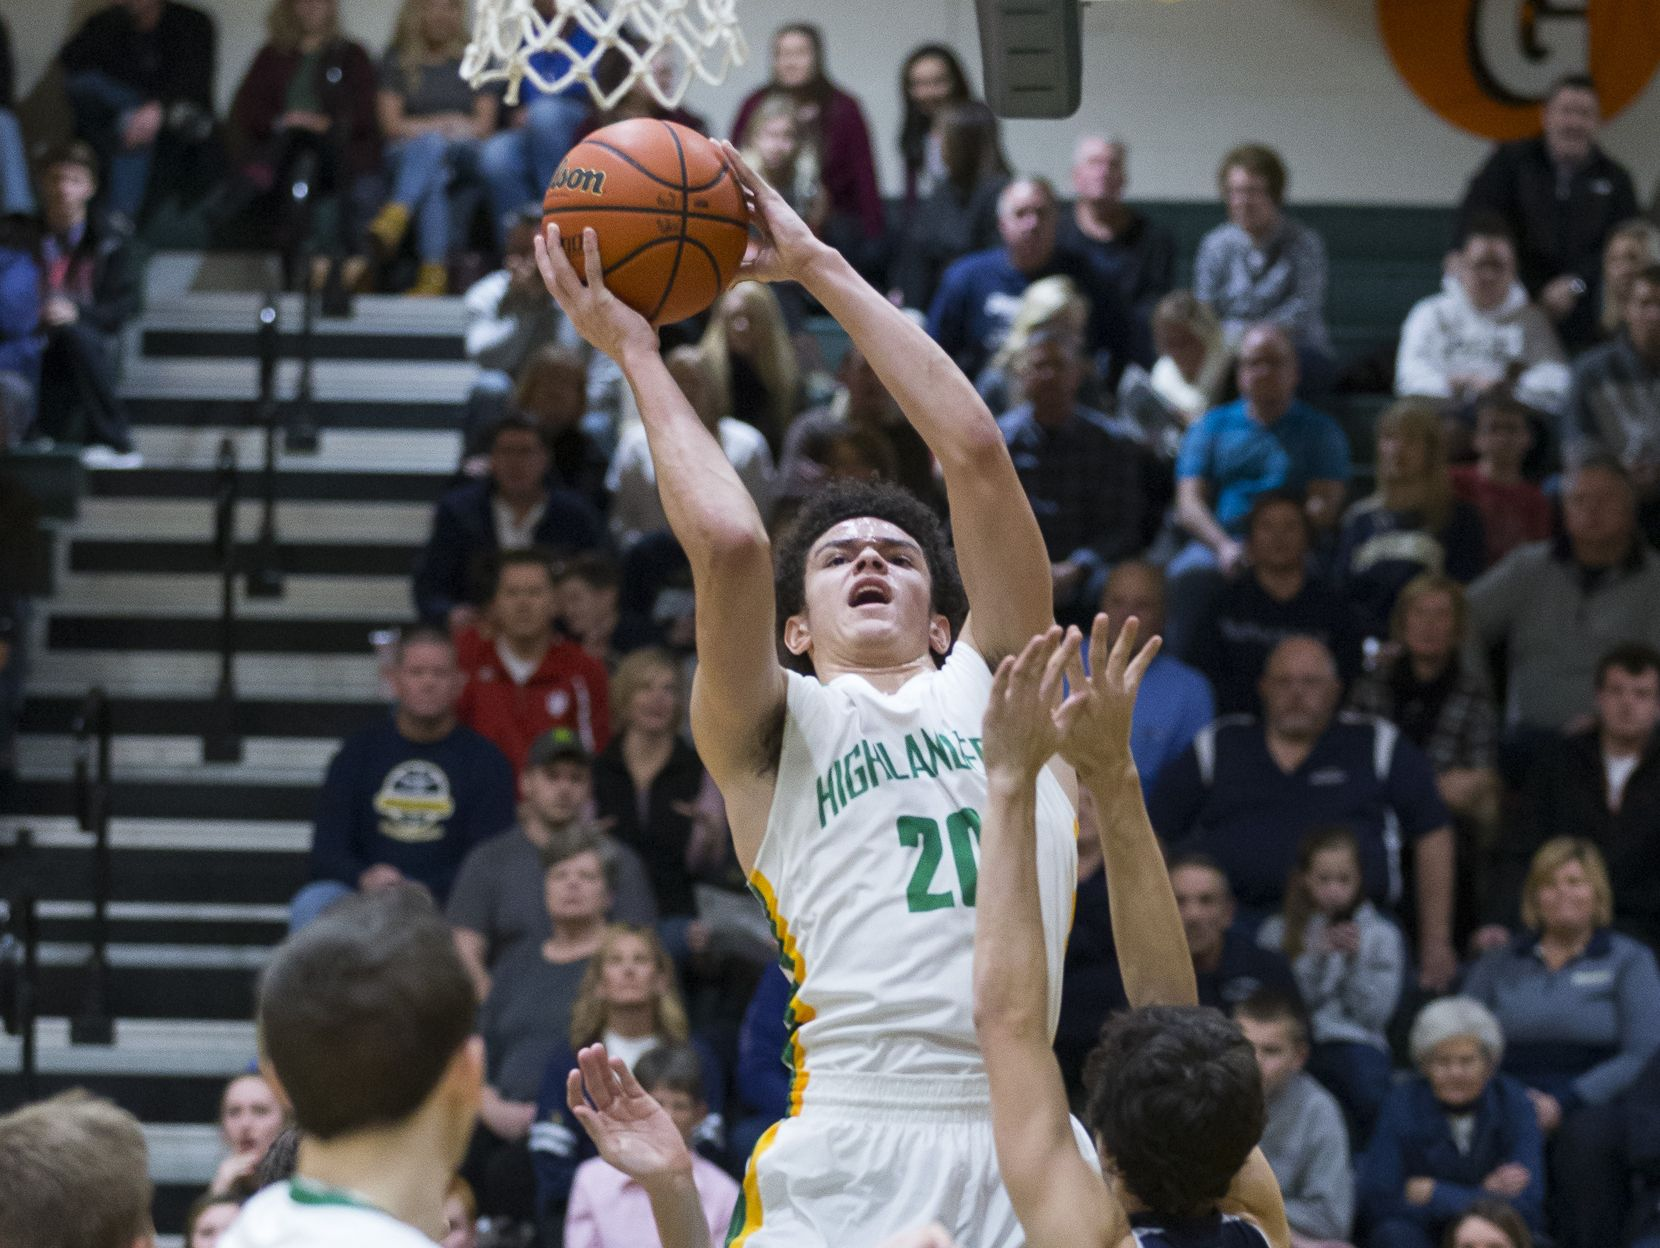 Floyd Central High School forward Cobie Barnes (20) shoots the ball during the game between Floyd Central and Providence at Floyd Central High School.